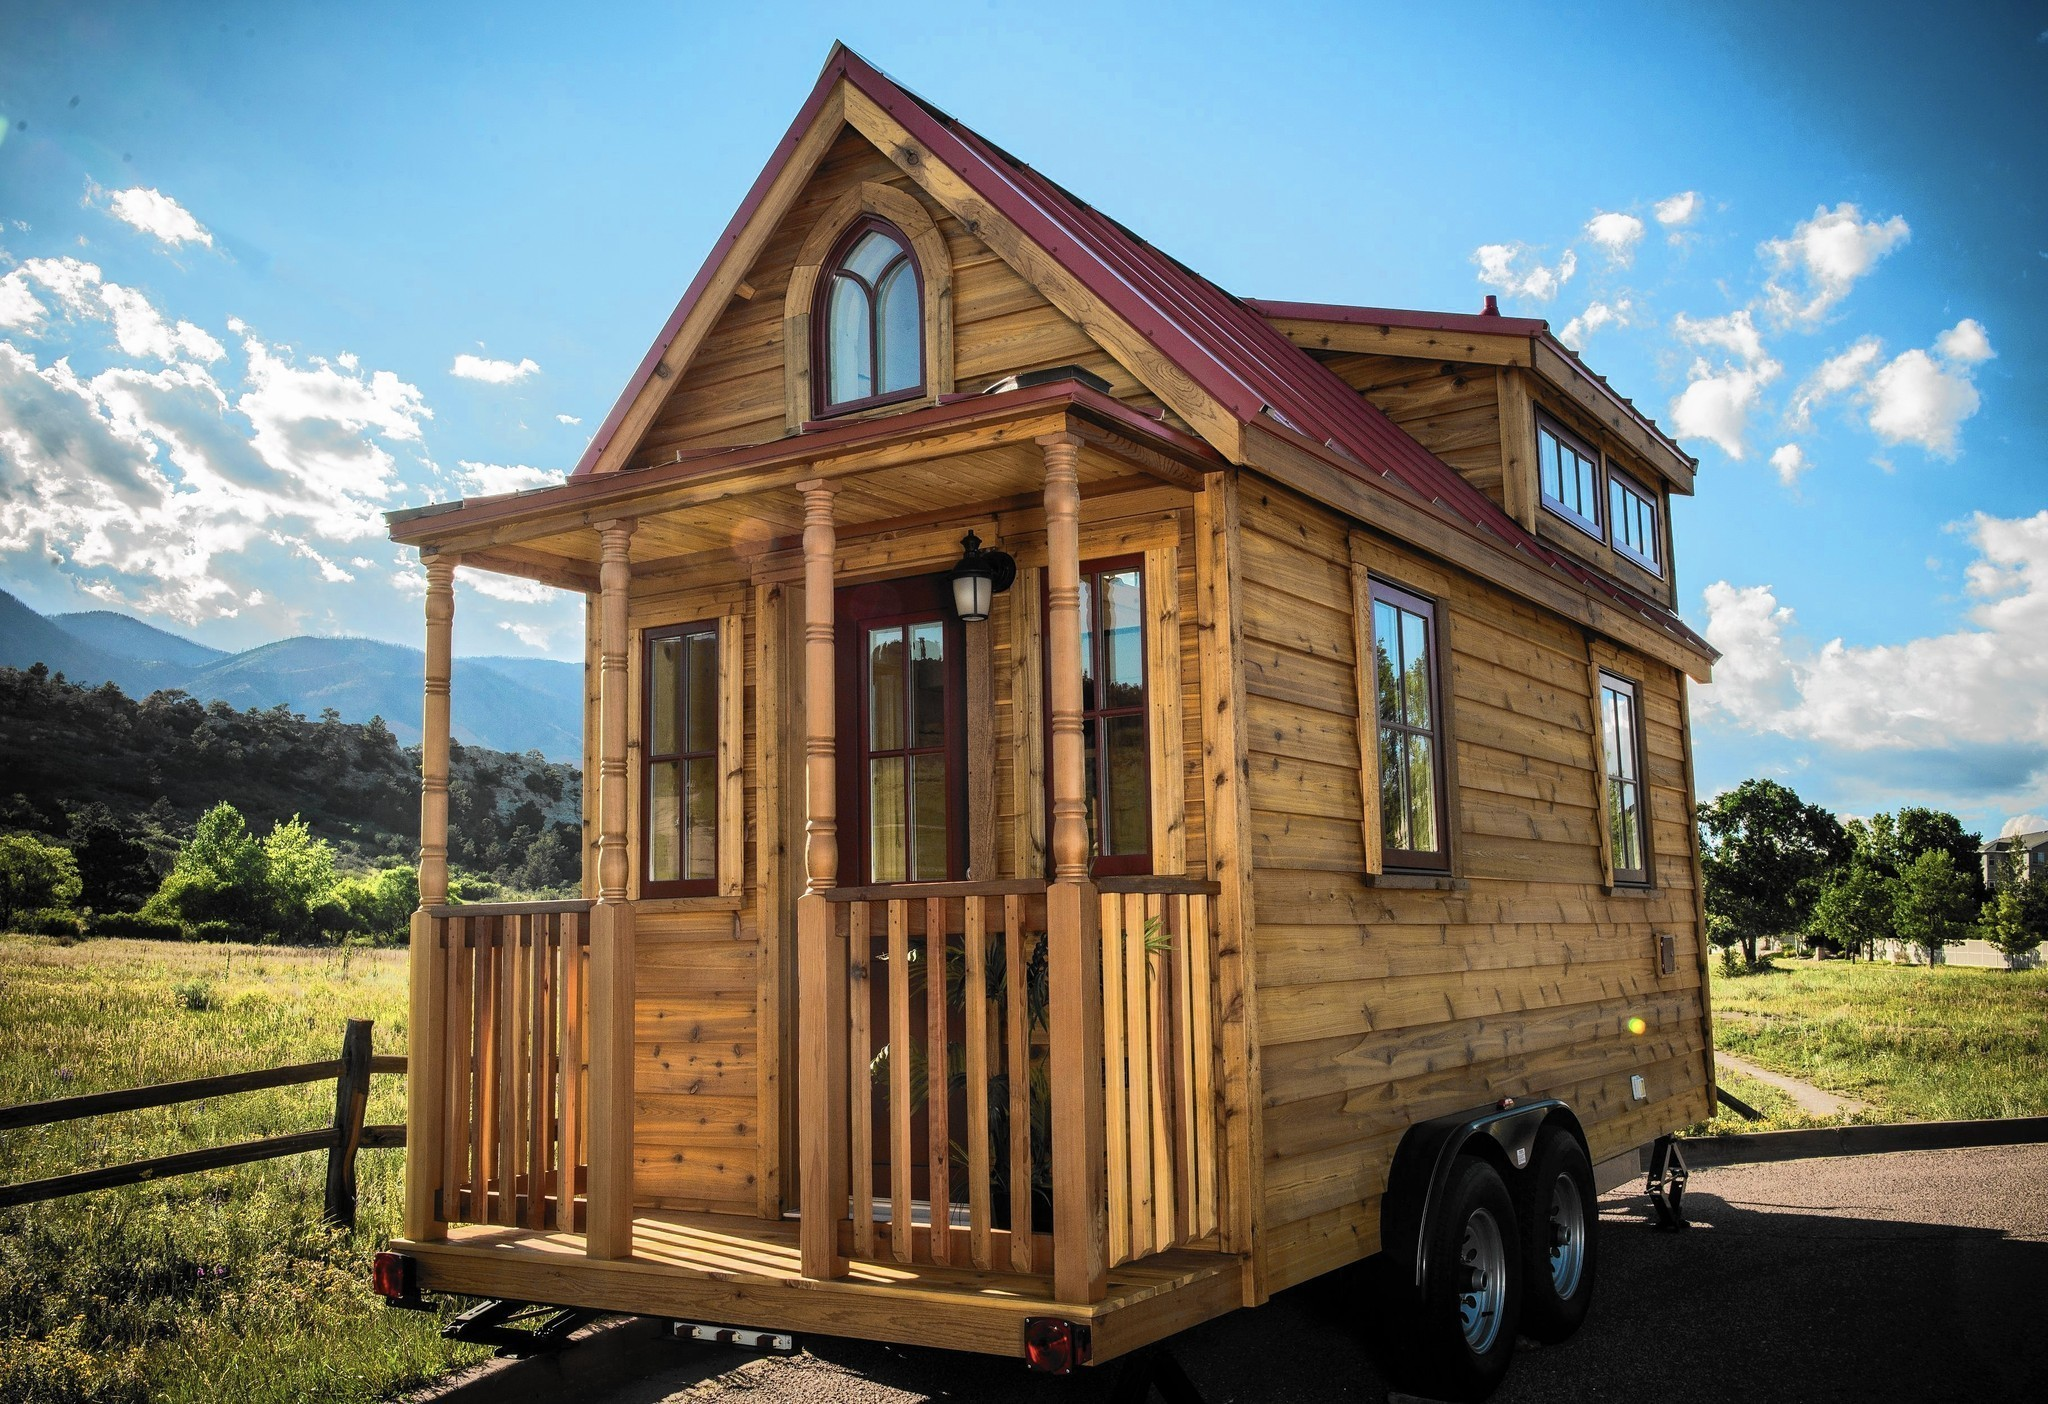 Whats with the tiny house trend Orlando Sentinel